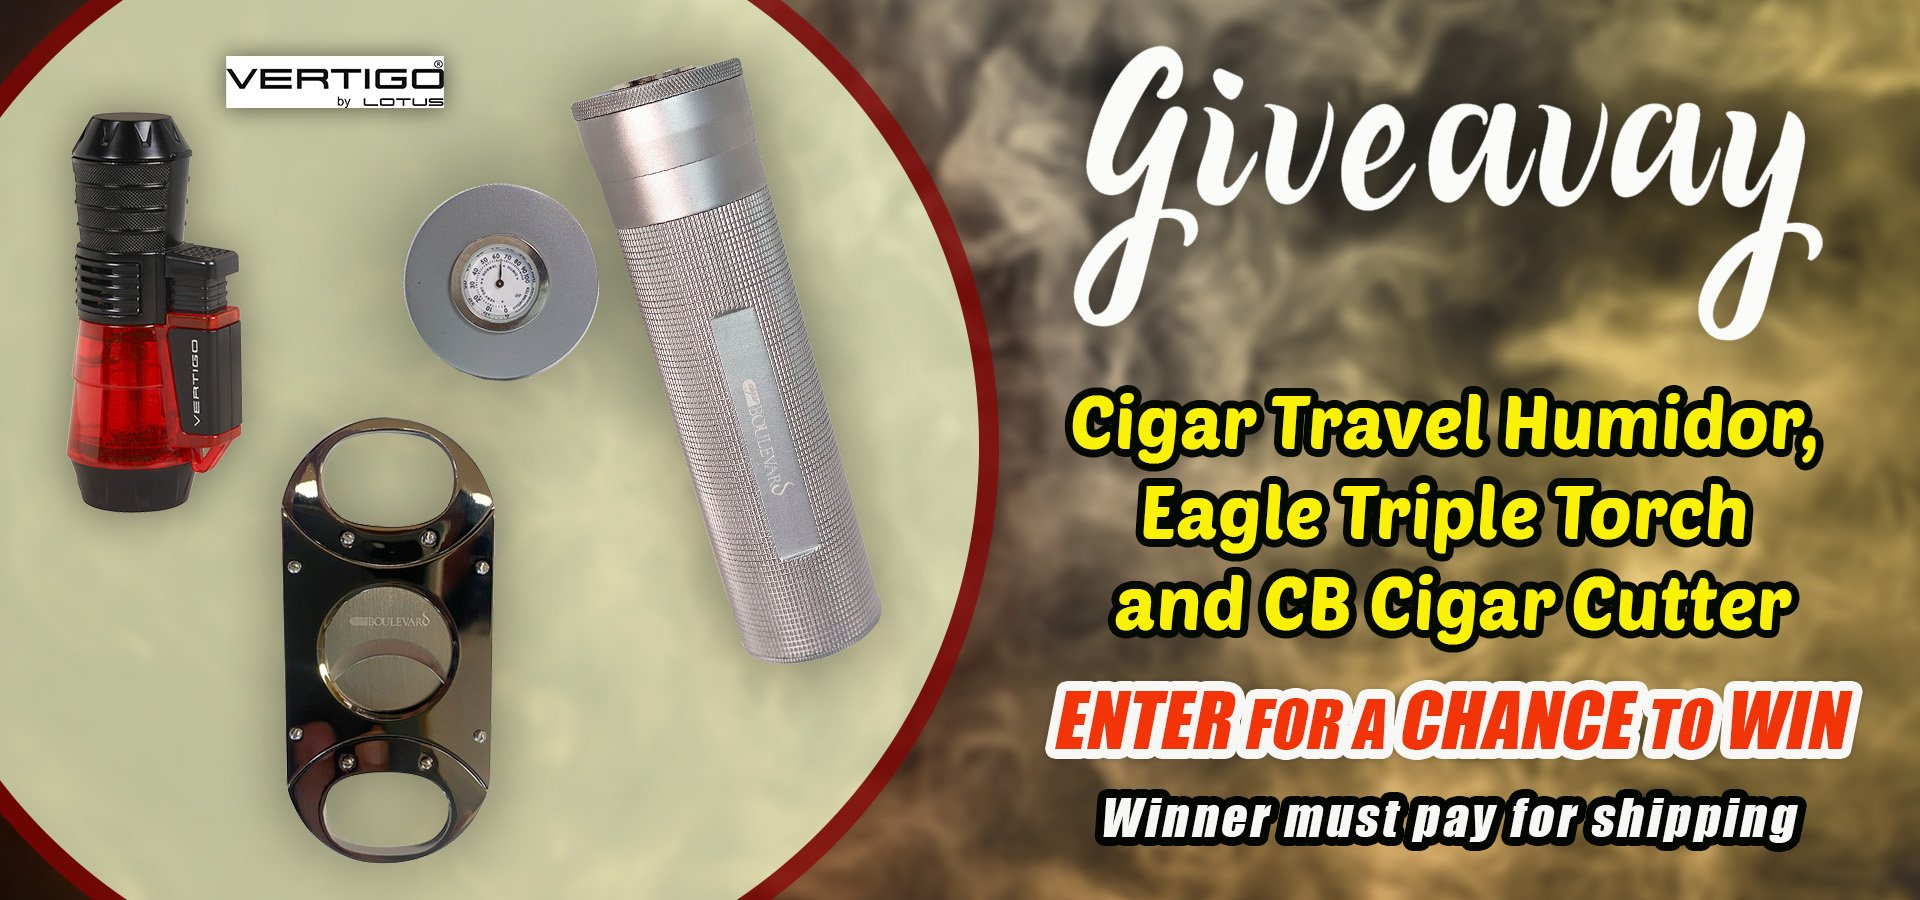 The Big Black Cigar Humidors